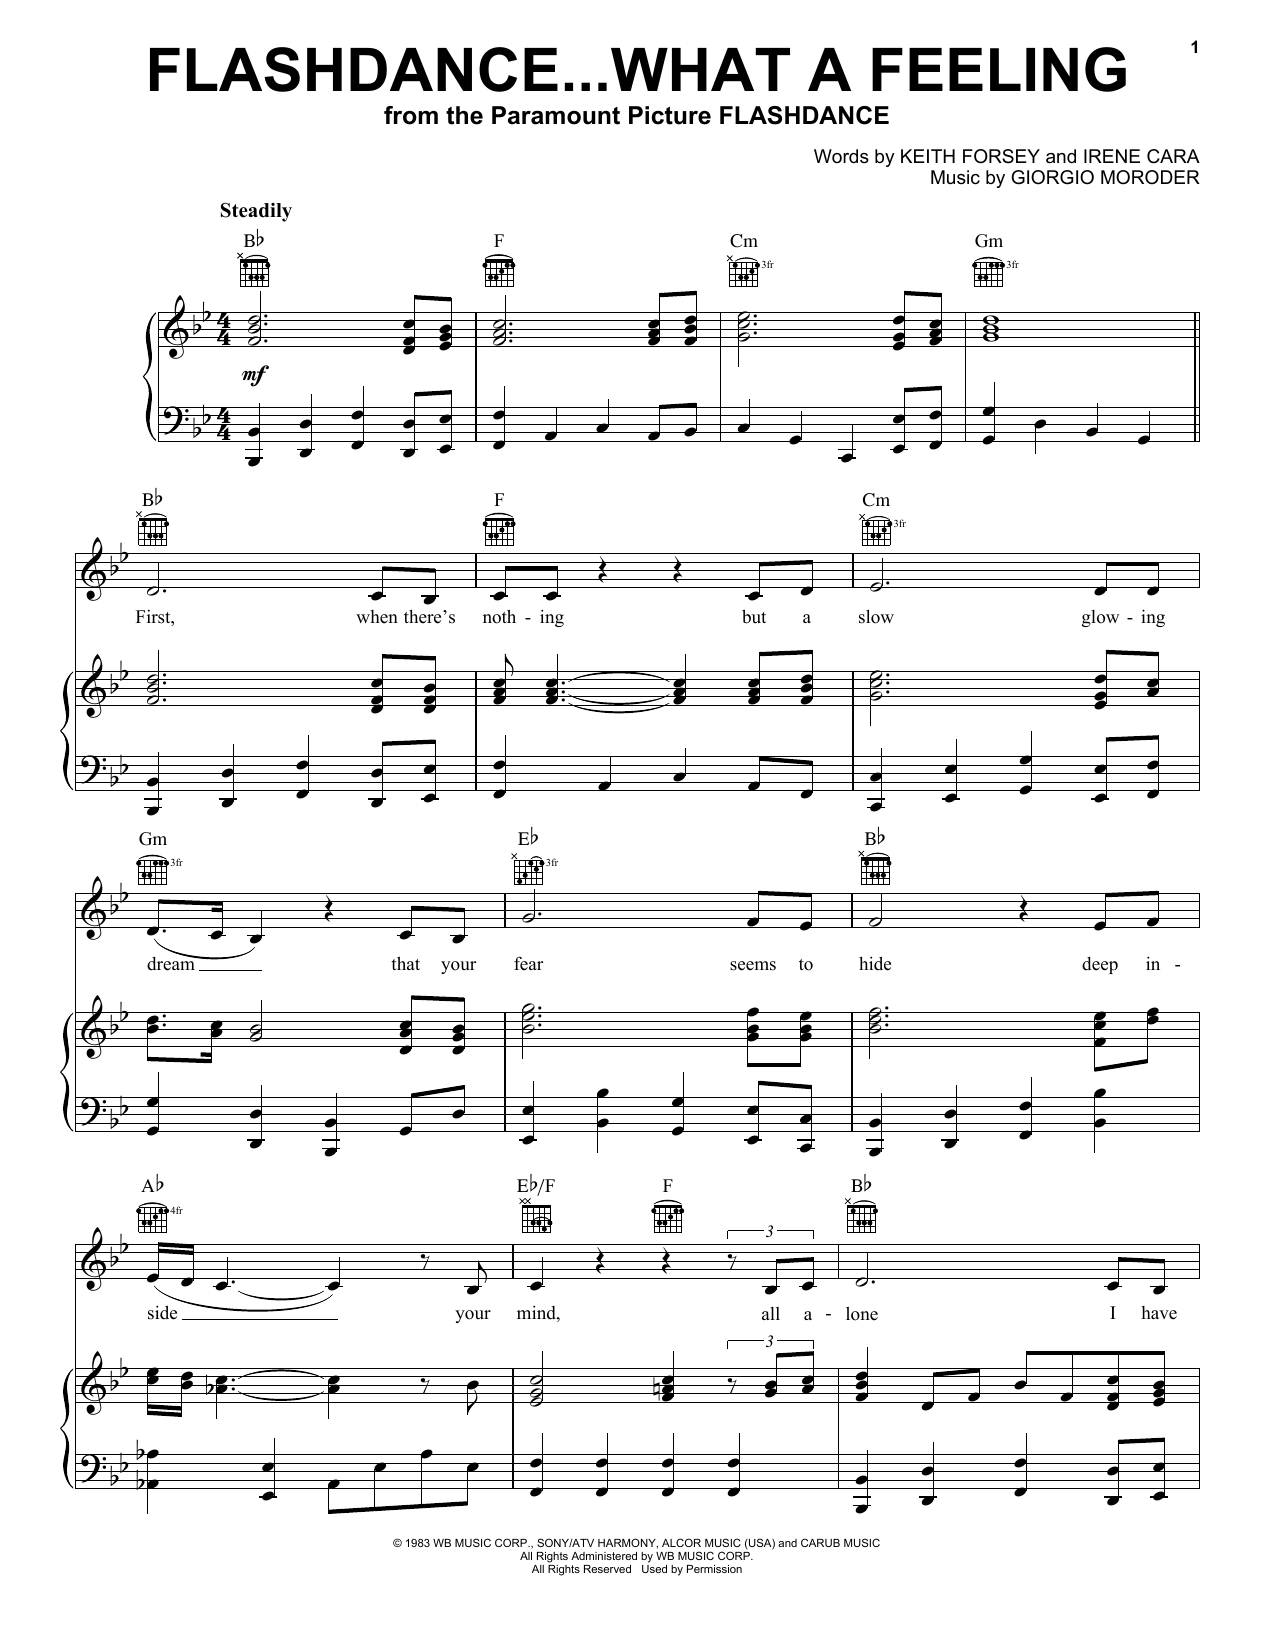 Irene Cara Flashdance...What A Feeling sheet music notes and chords. Download Printable PDF.